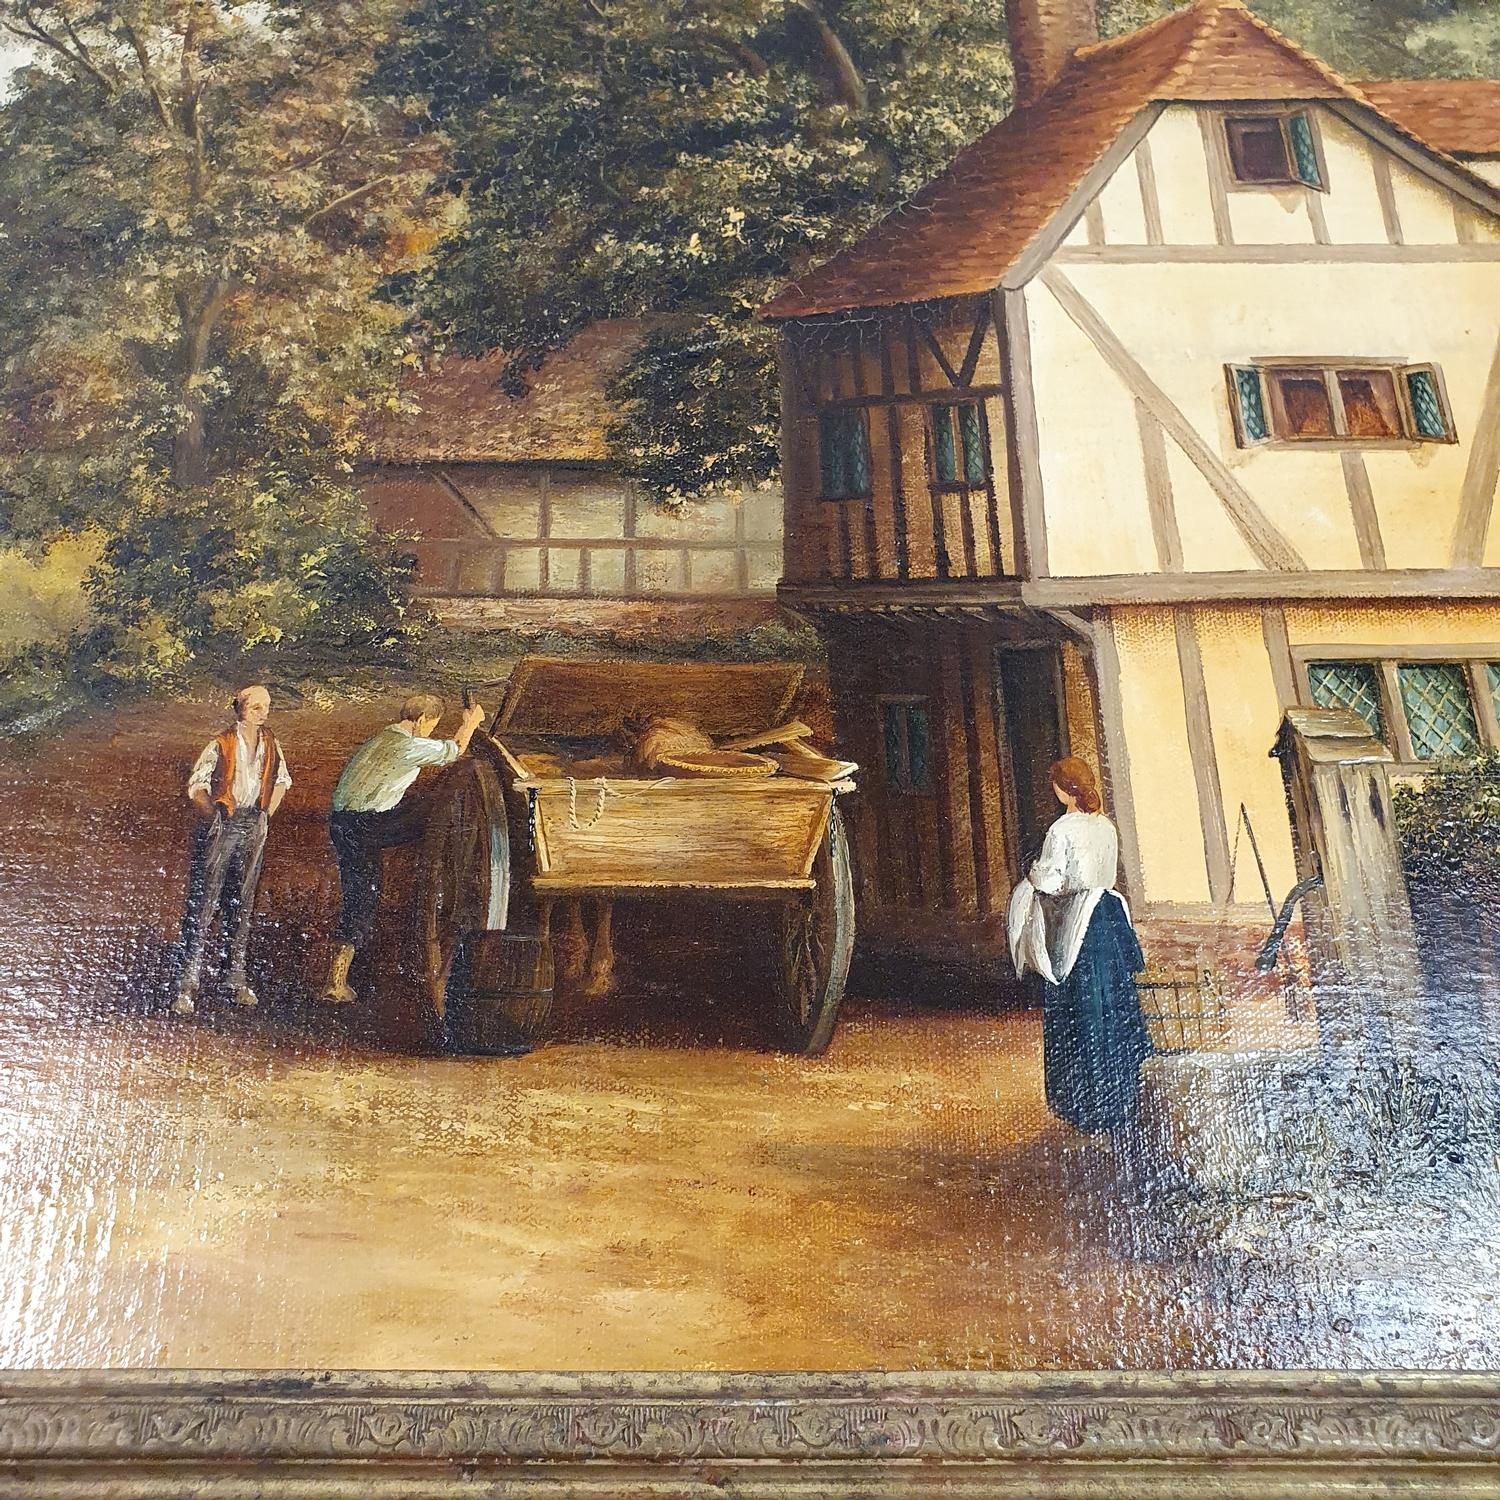 H Douglas, landscape with figures in a cart, 60 x 90 cm, and another landscape, 60 x 90 cm (2) - Image 2 of 3